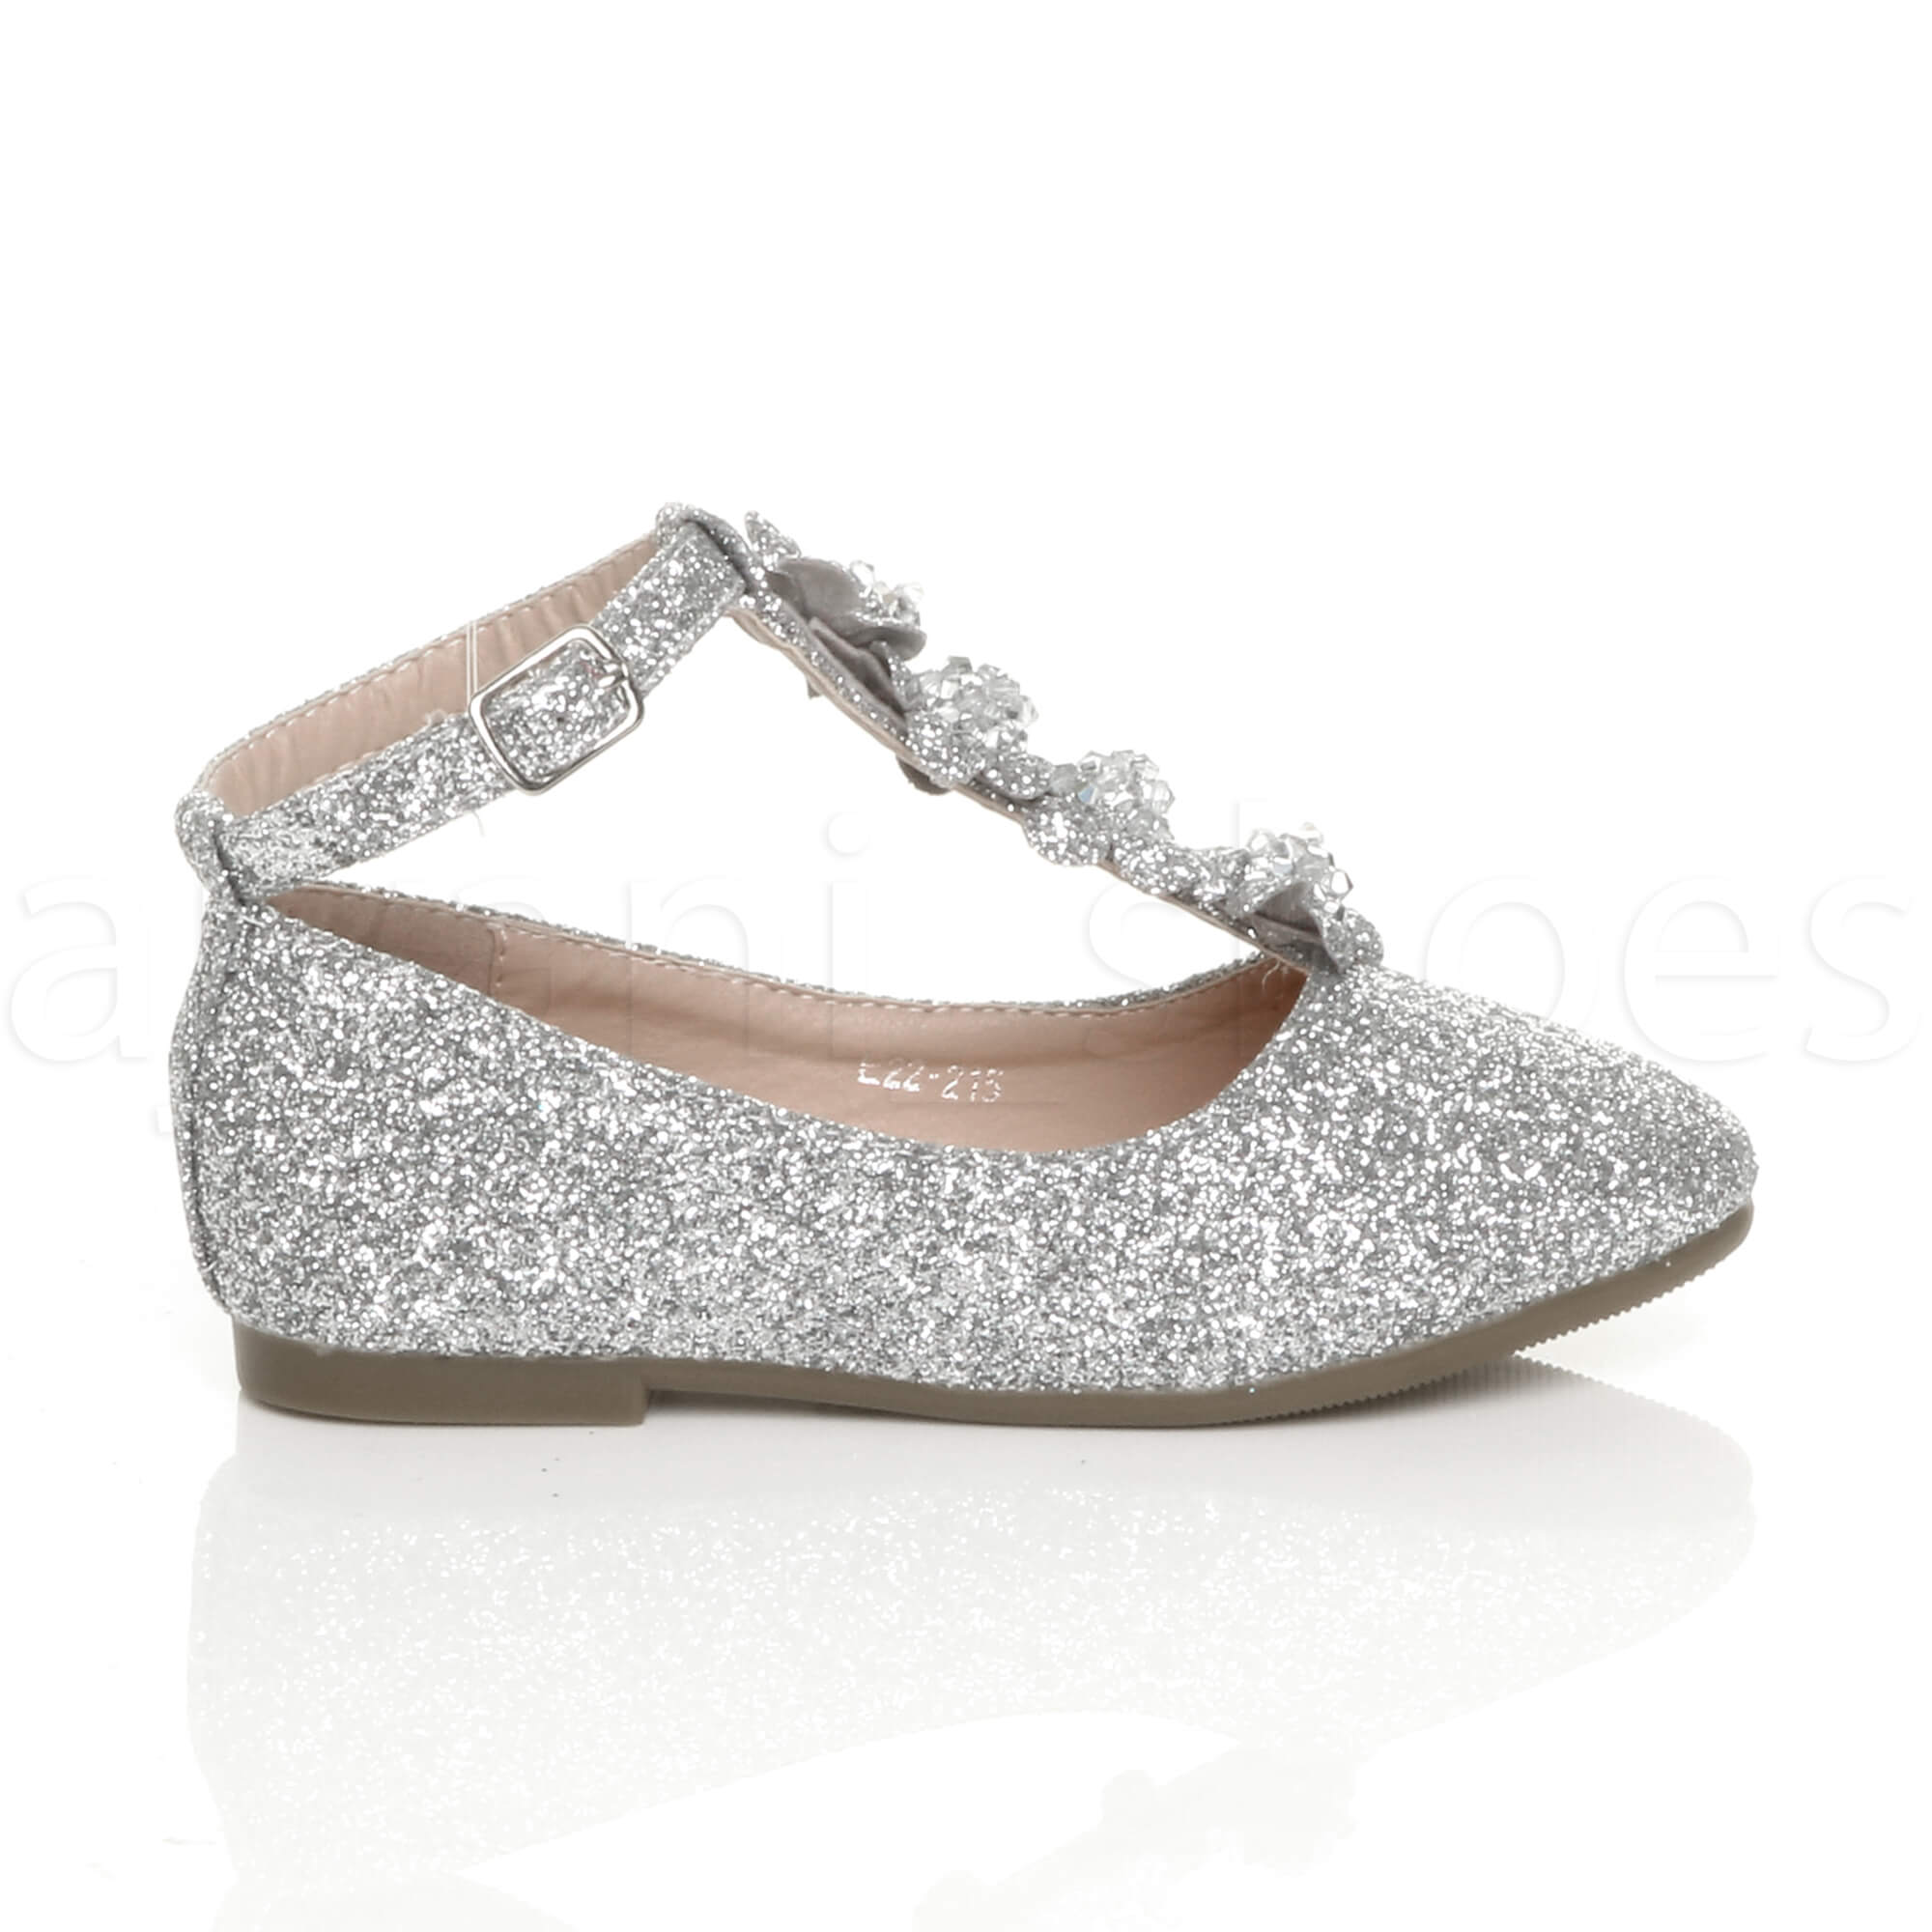 GIRLS-KIDS-CHILDRENS-FLAT-T-BAR-GLITTER-WEDDING-BRIDESMAID-SHOES-BALLERINAS-SIZE